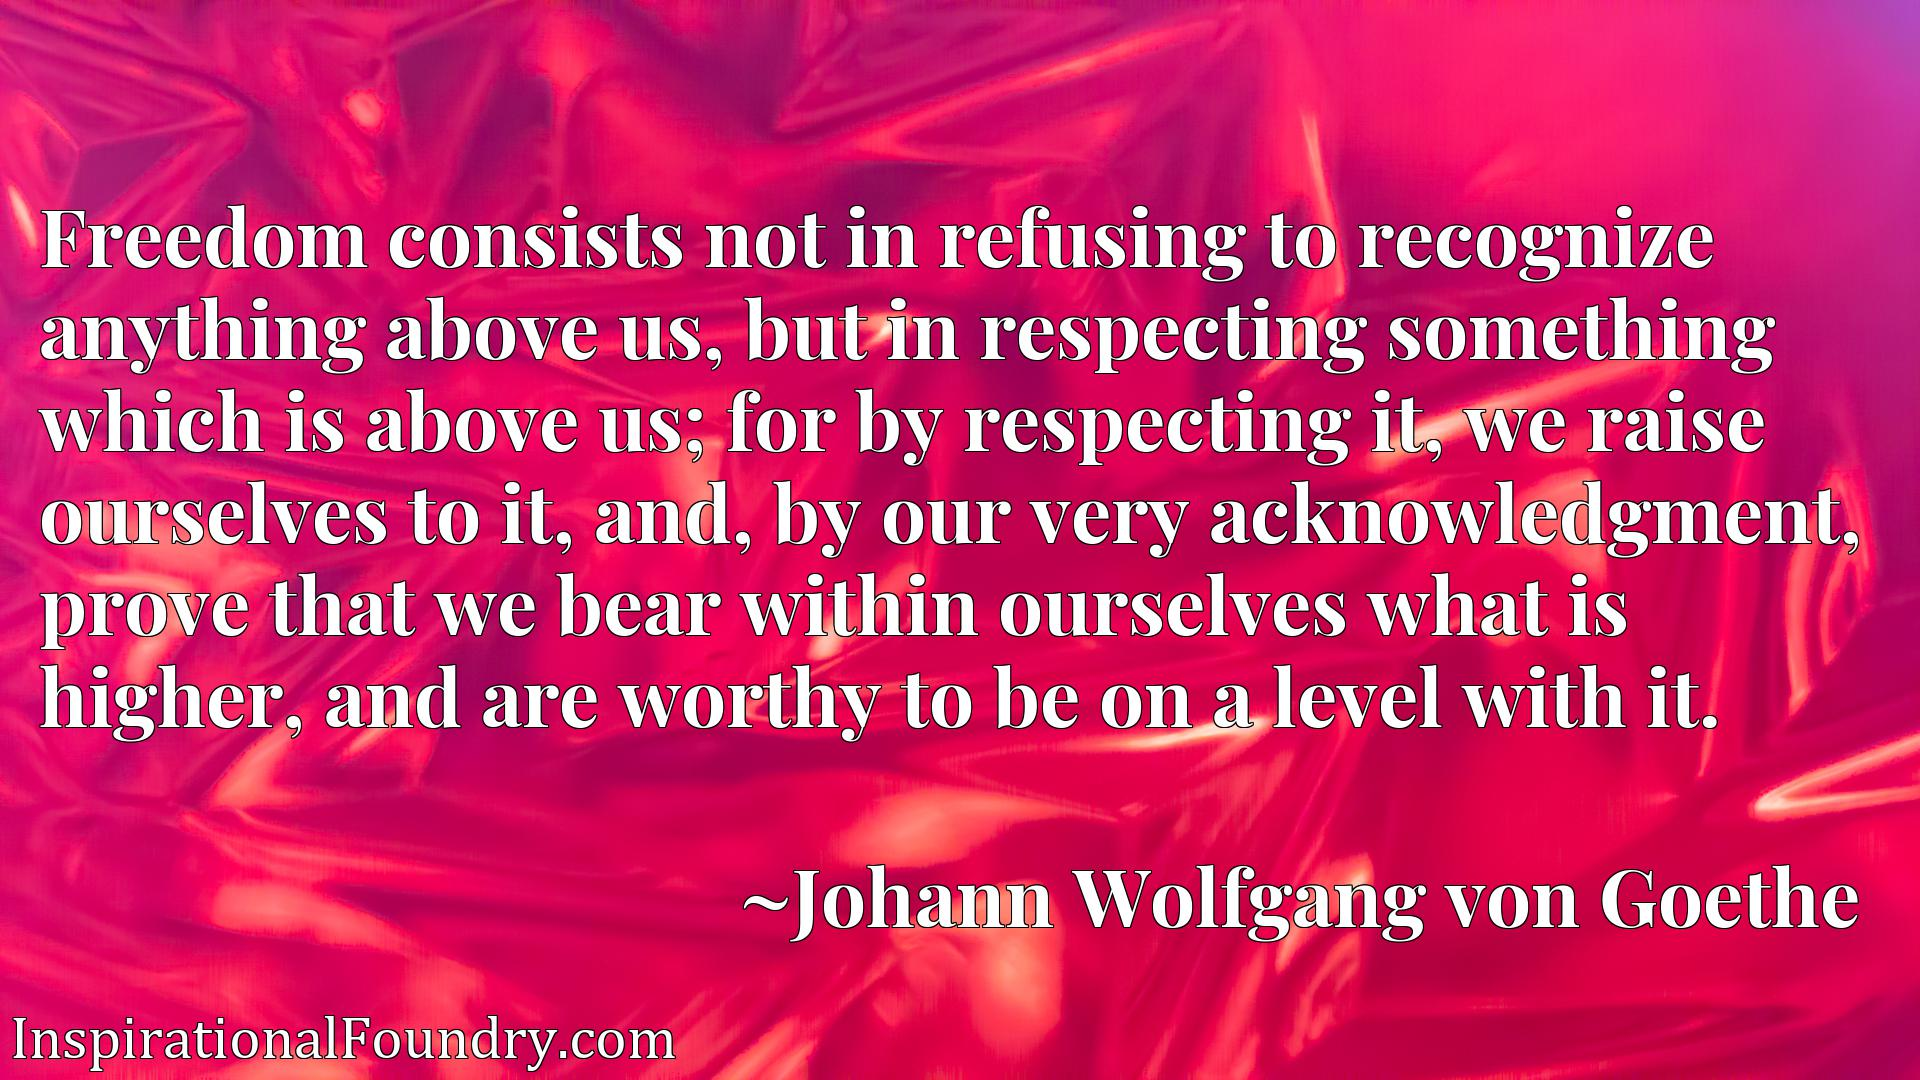 Freedom consists not in refusing to recognize anything above us, but in respecting something which is above us; for by respecting it, we raise ourselves to it, and, by our very acknowledgment, prove that we bear within ourselves what is higher, and are worthy to be on a level with it.